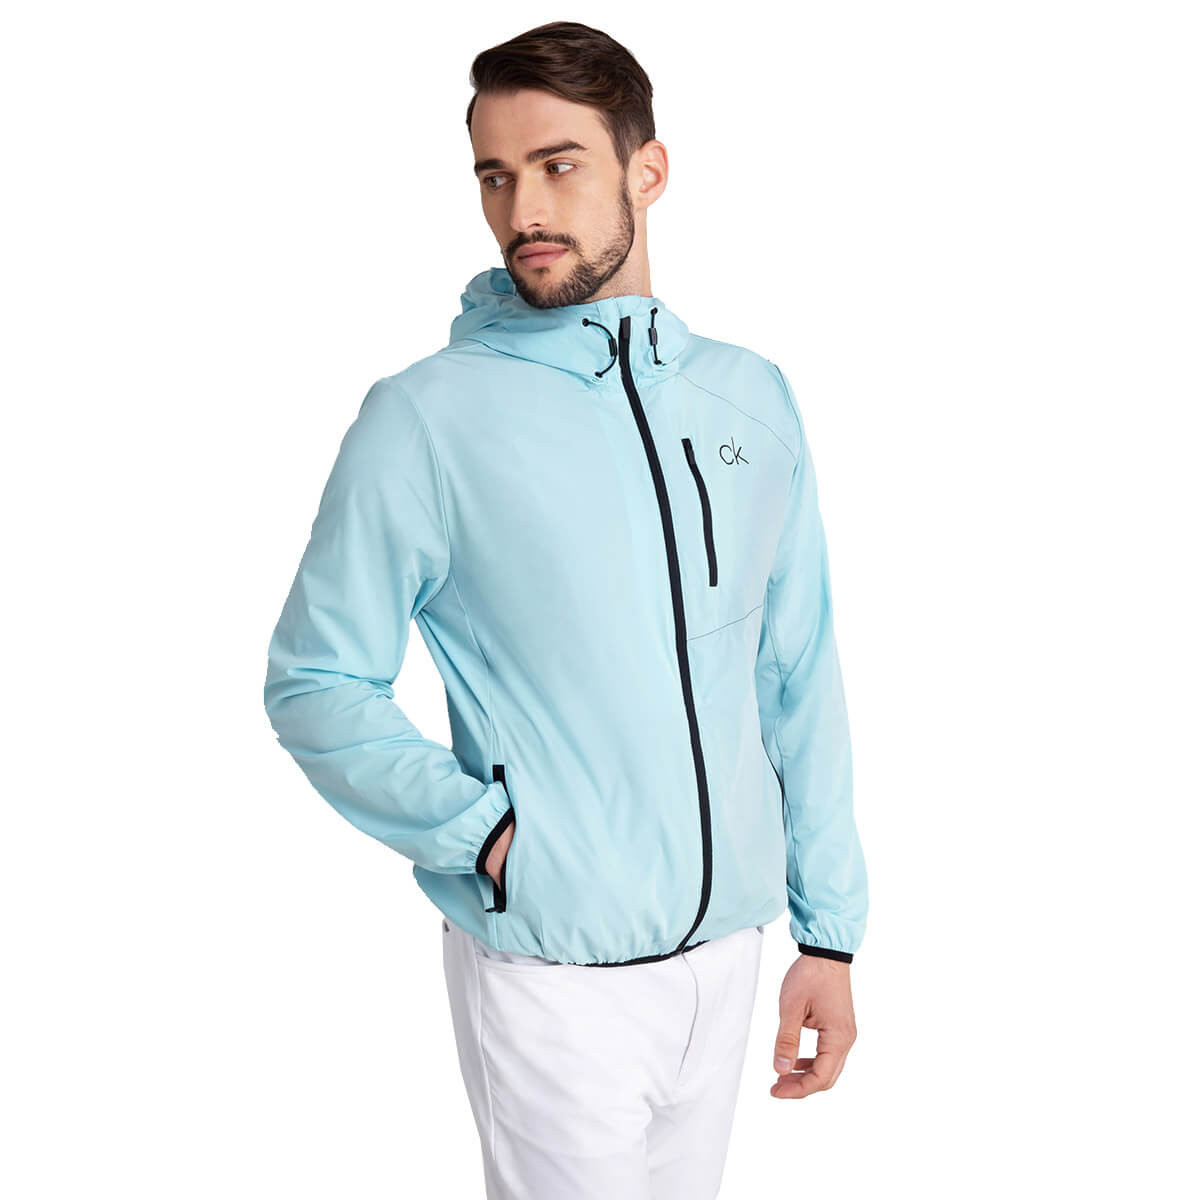 Under Armour Mens 2020 Stretch-Woven Hooded Wind Resistent Jacket 34/% OFF RRP